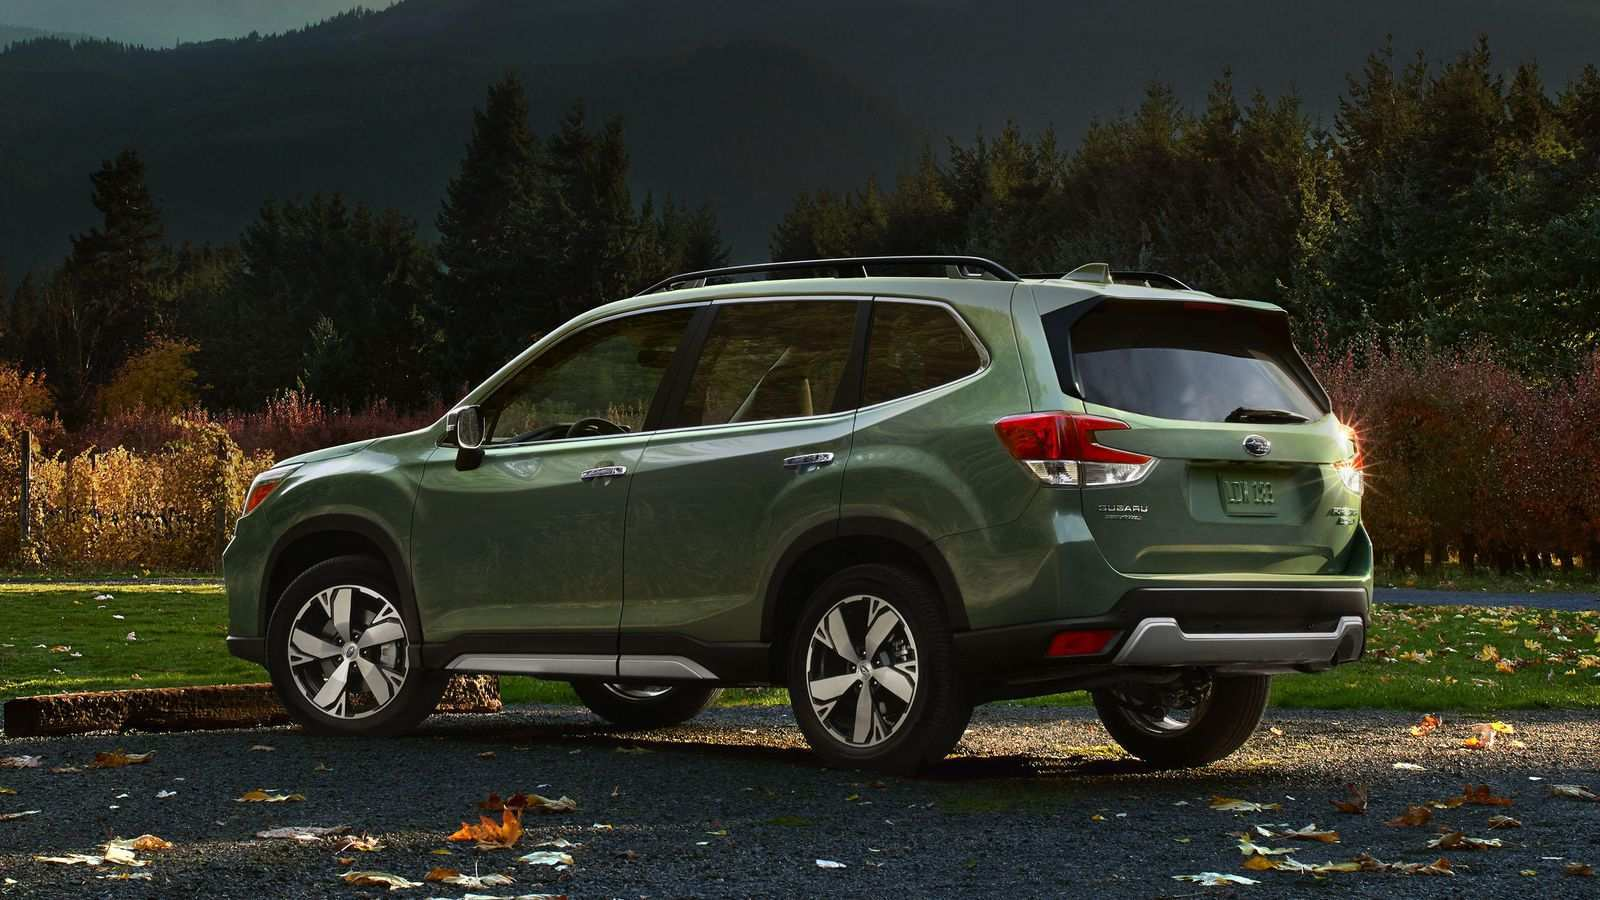 59 The 2019 Subaru Forester Debut Photos for 2019 Subaru Forester Debut